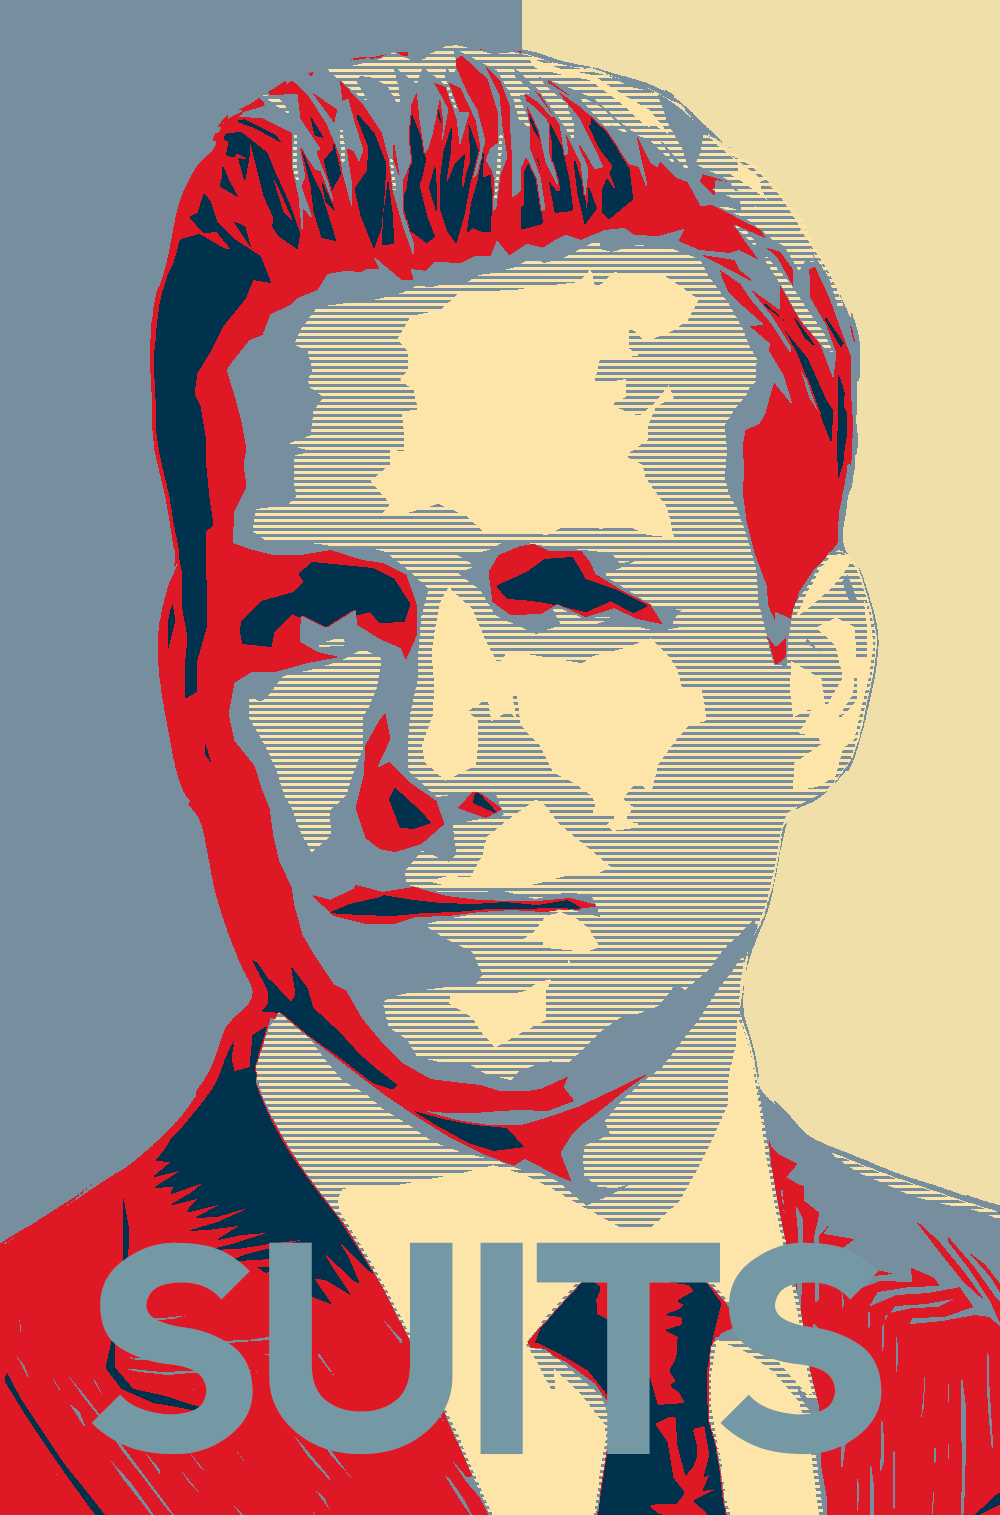 Harvey specter obama poster by iamsolazy3 on deviantart for Harvey s paint and body